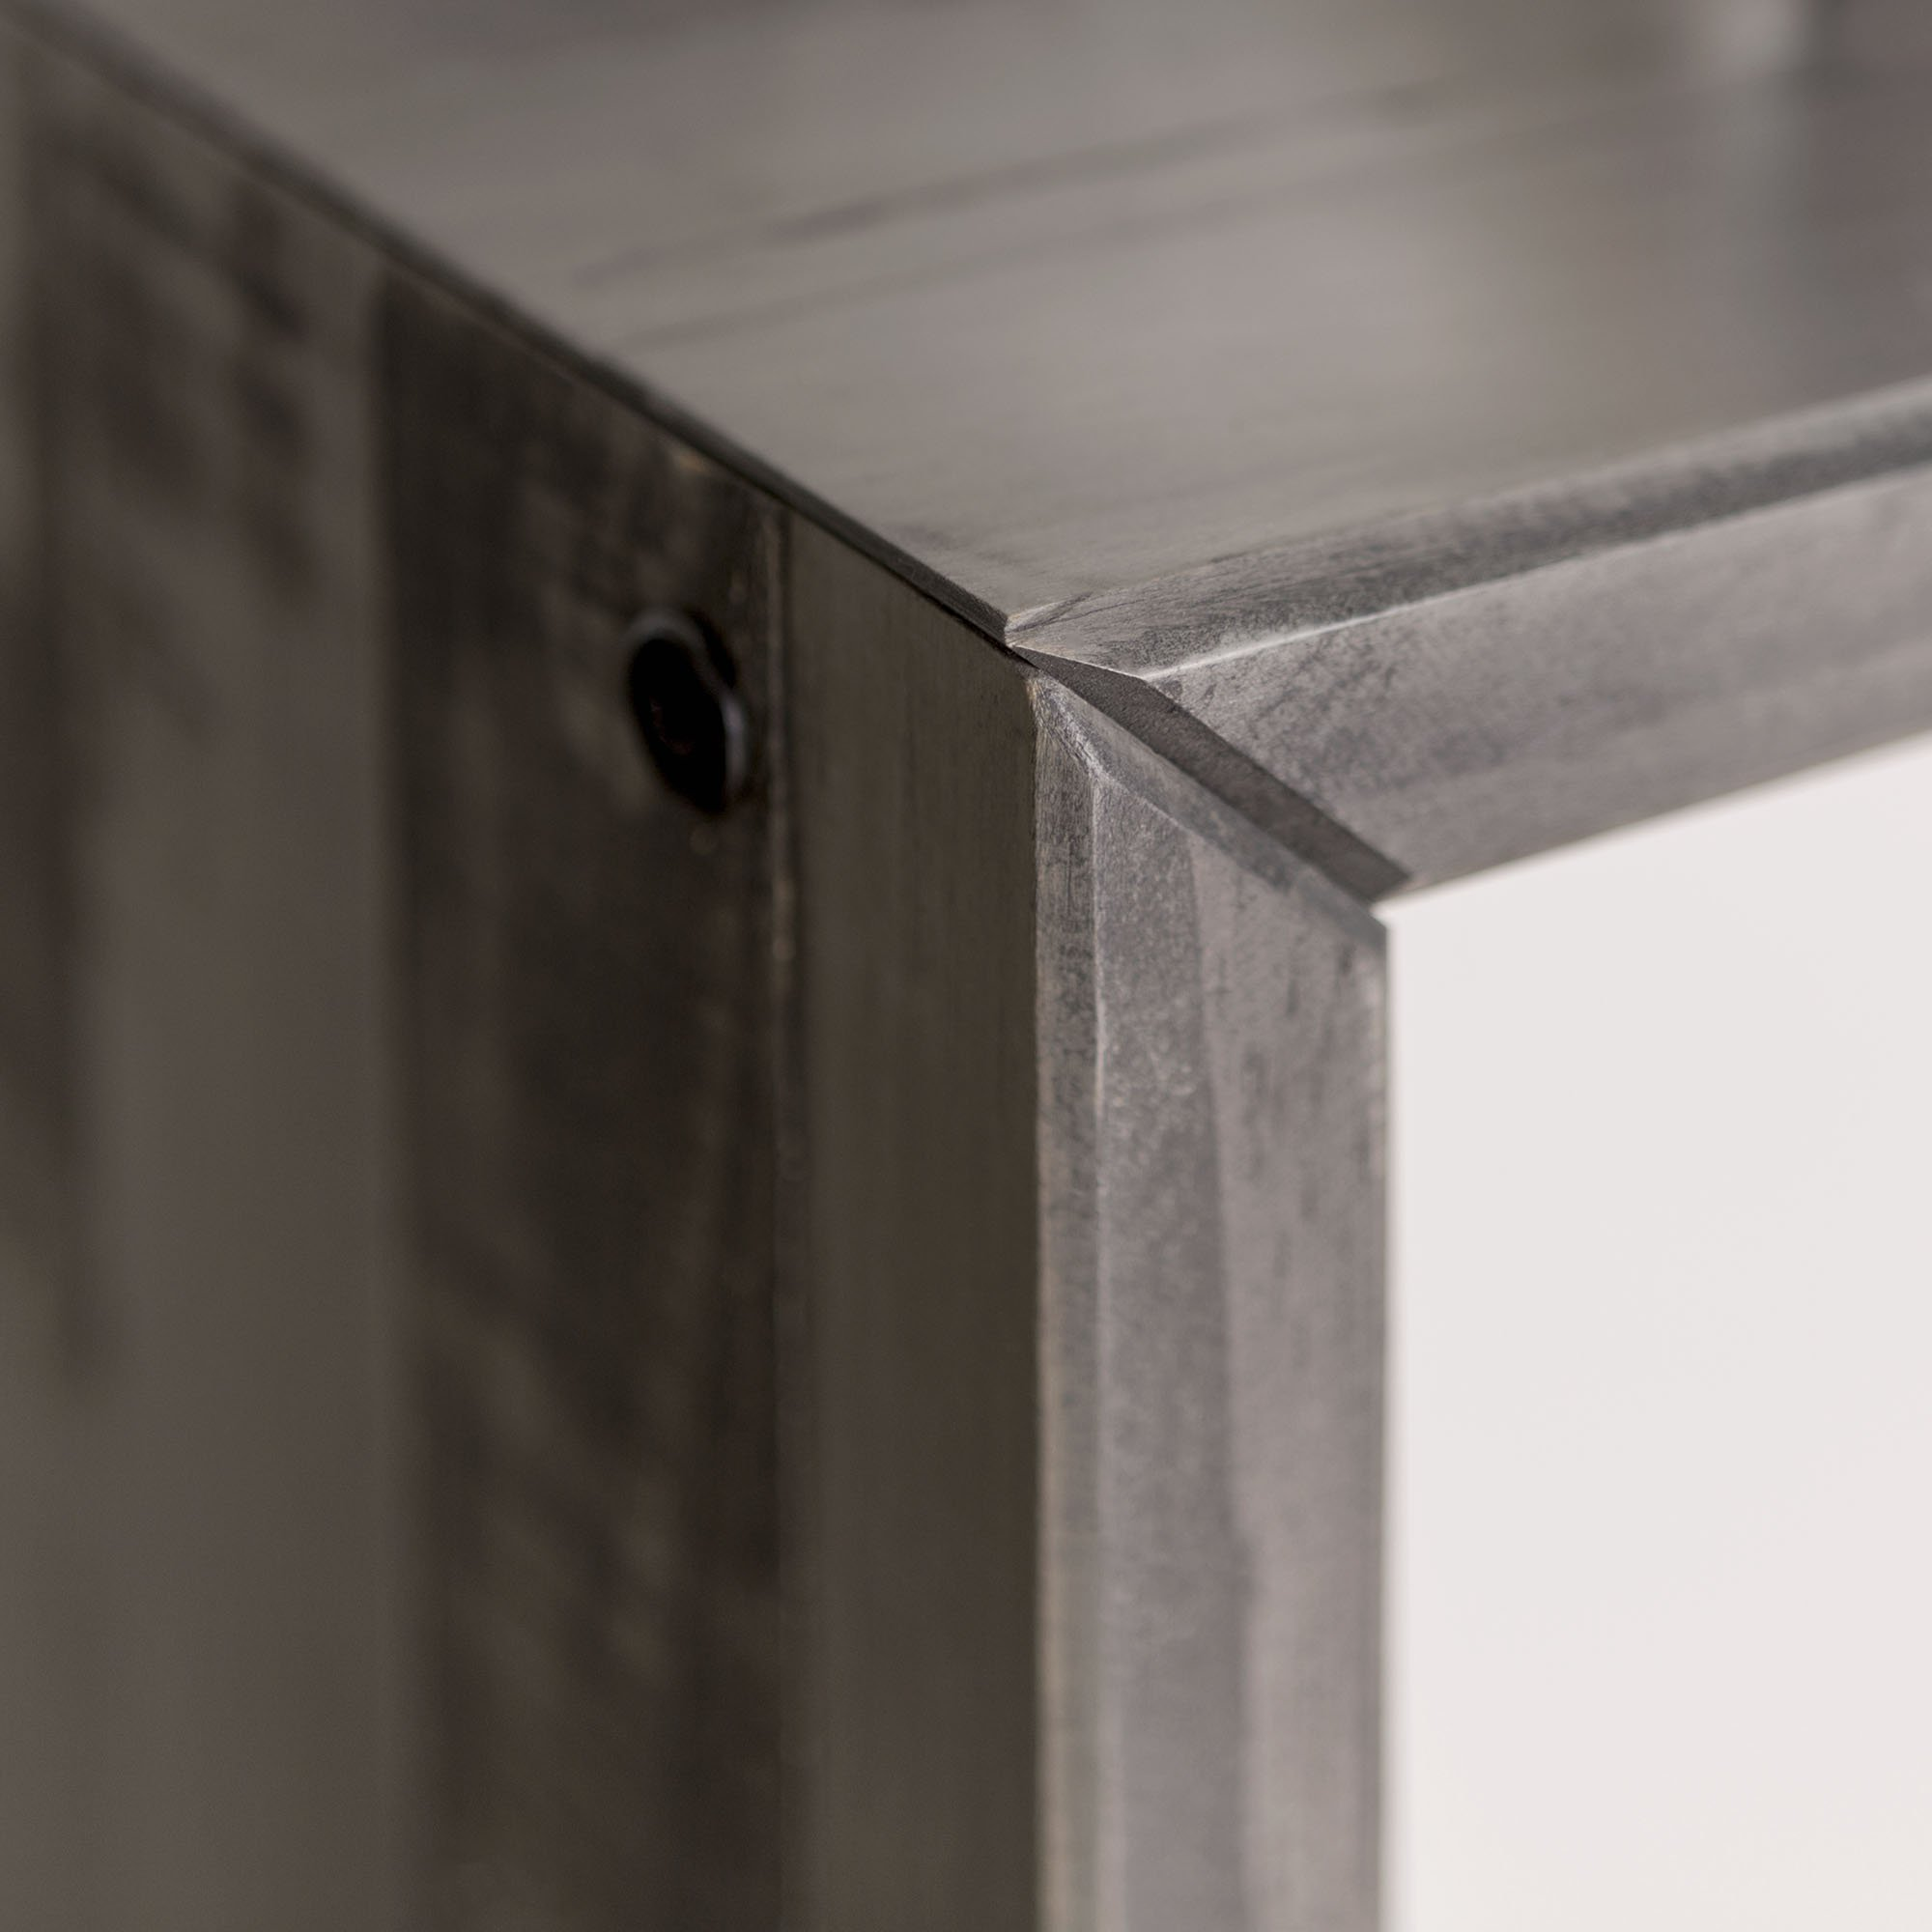 WE Furniture Reclaimed Wood Entry Table in Gray - 48'' by WE Furniture (Image #4)